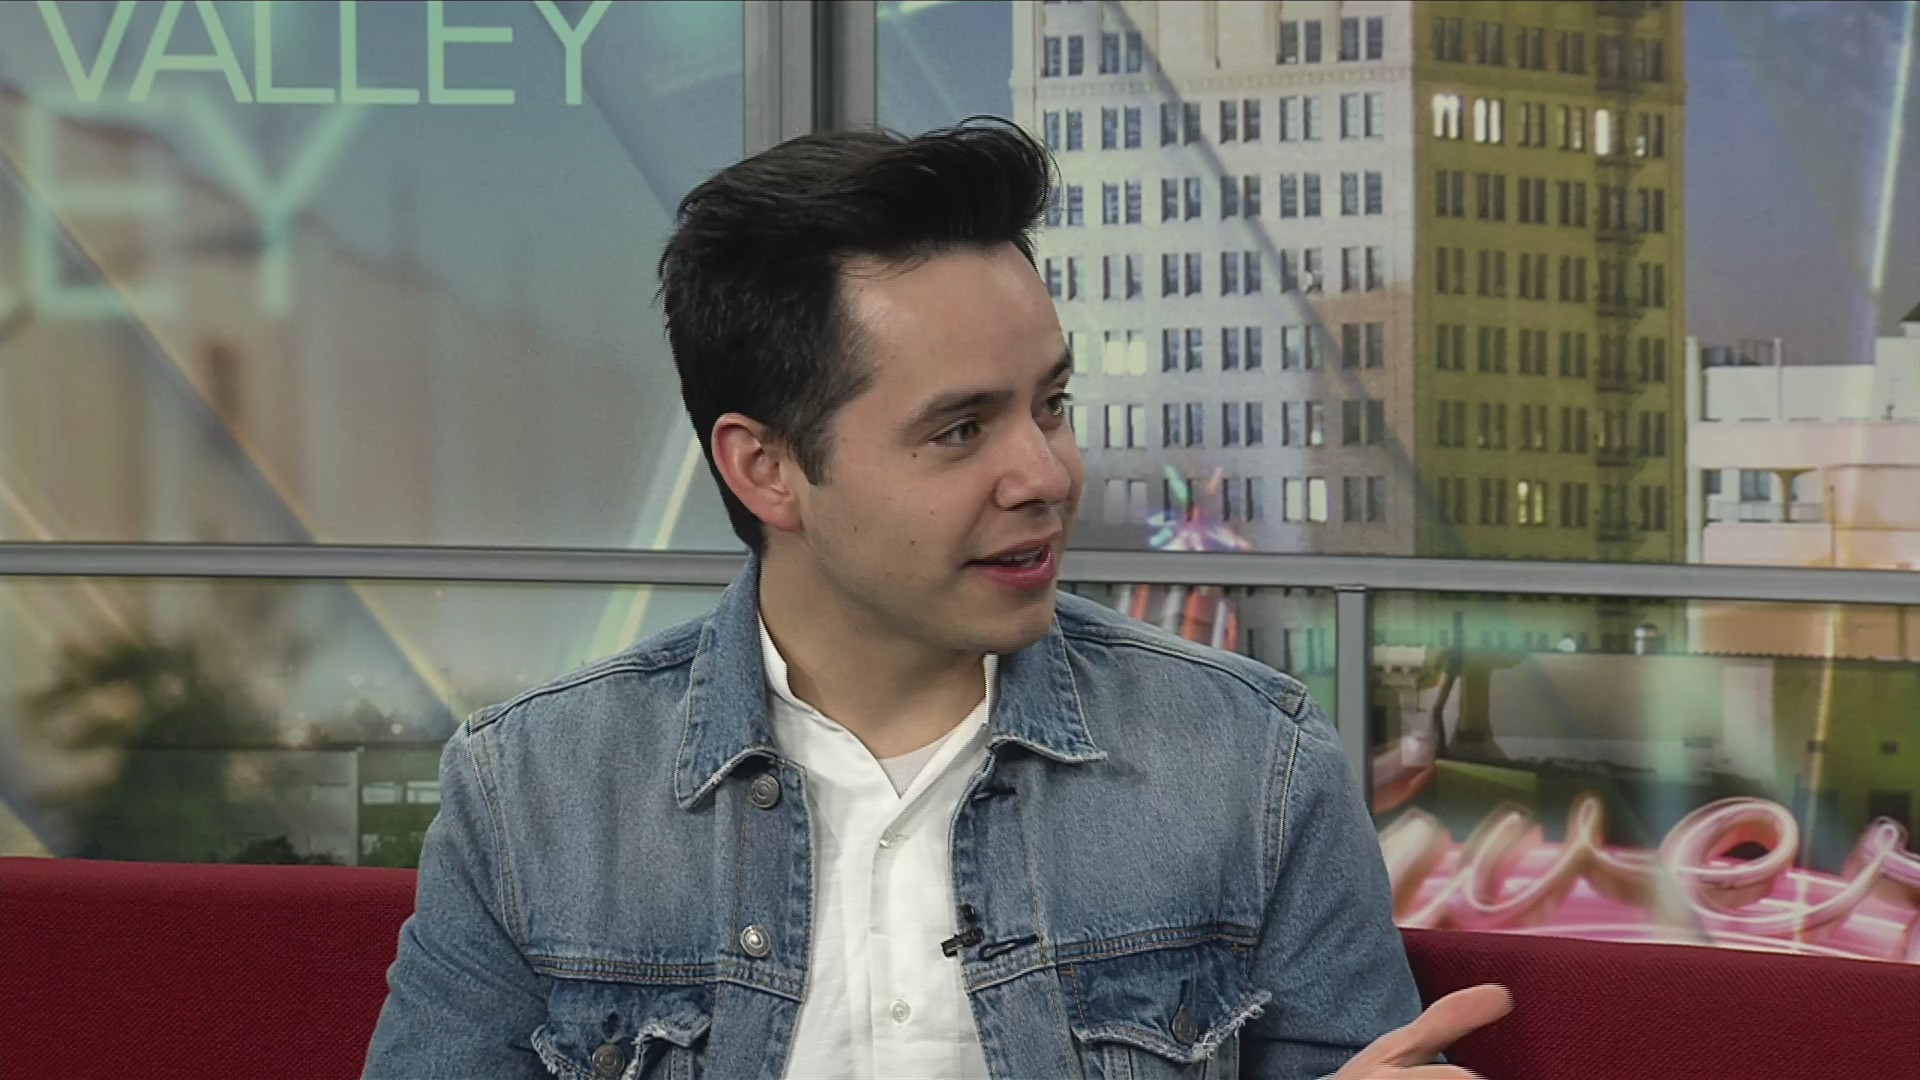 David Archuleta sat down with us on KSEE24 Midday